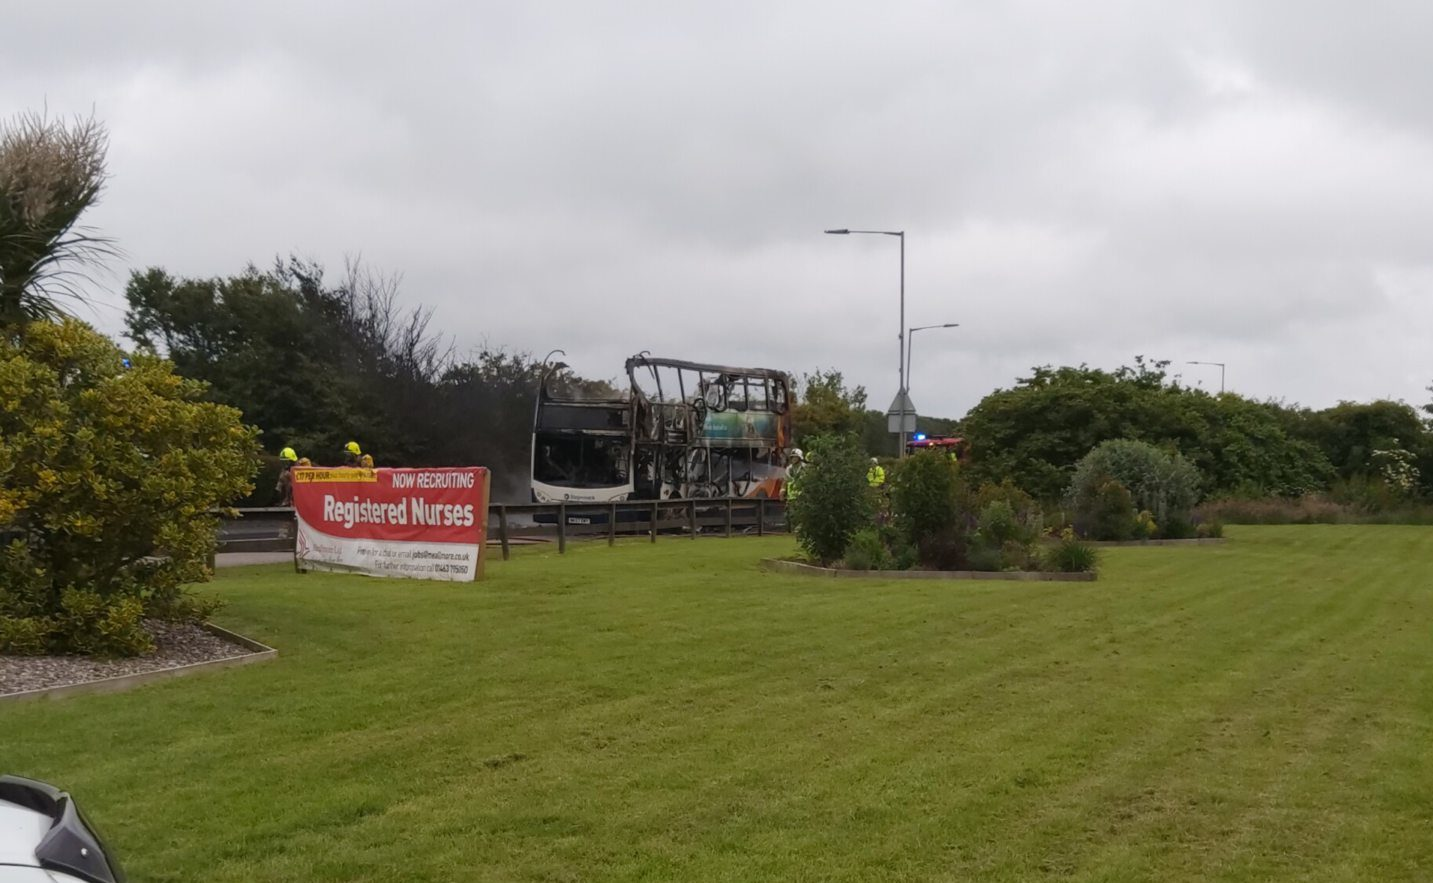 Fire crews were called to the scene at 2.25pm